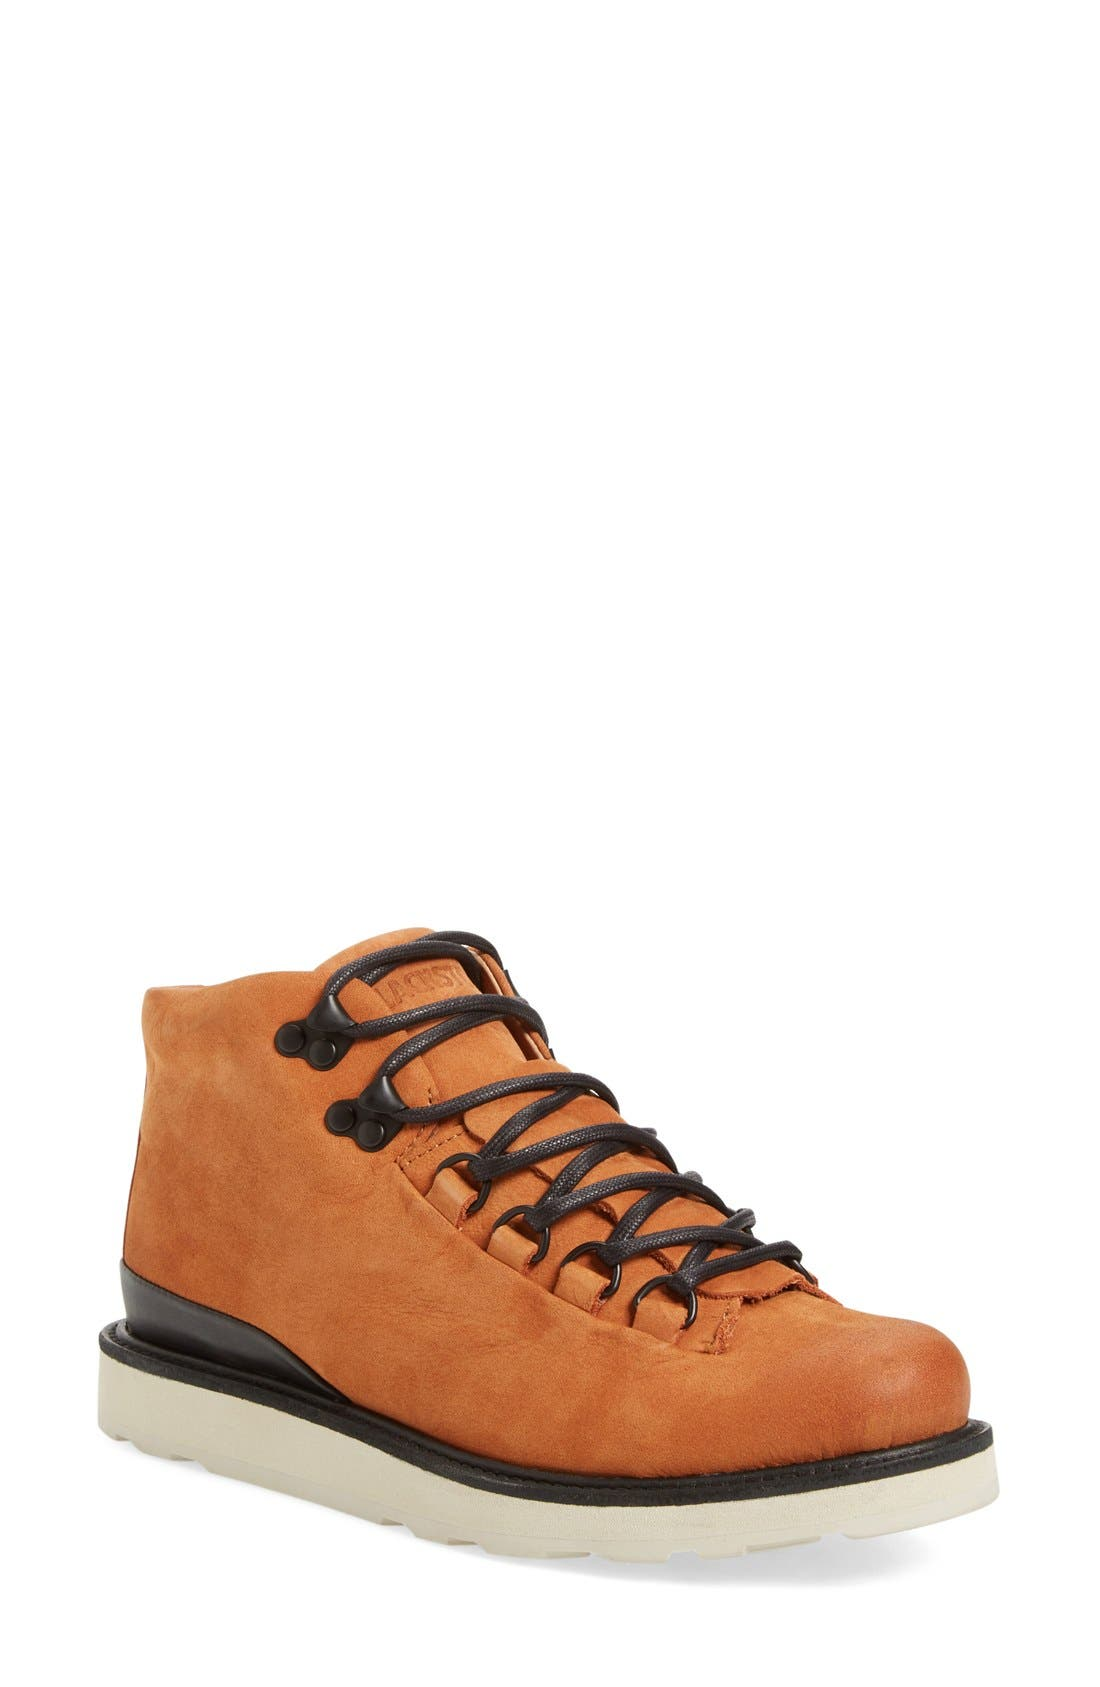 'MW76' Water Resistant Boot,                         Main,                         color, Cortecia Nubuck Leather